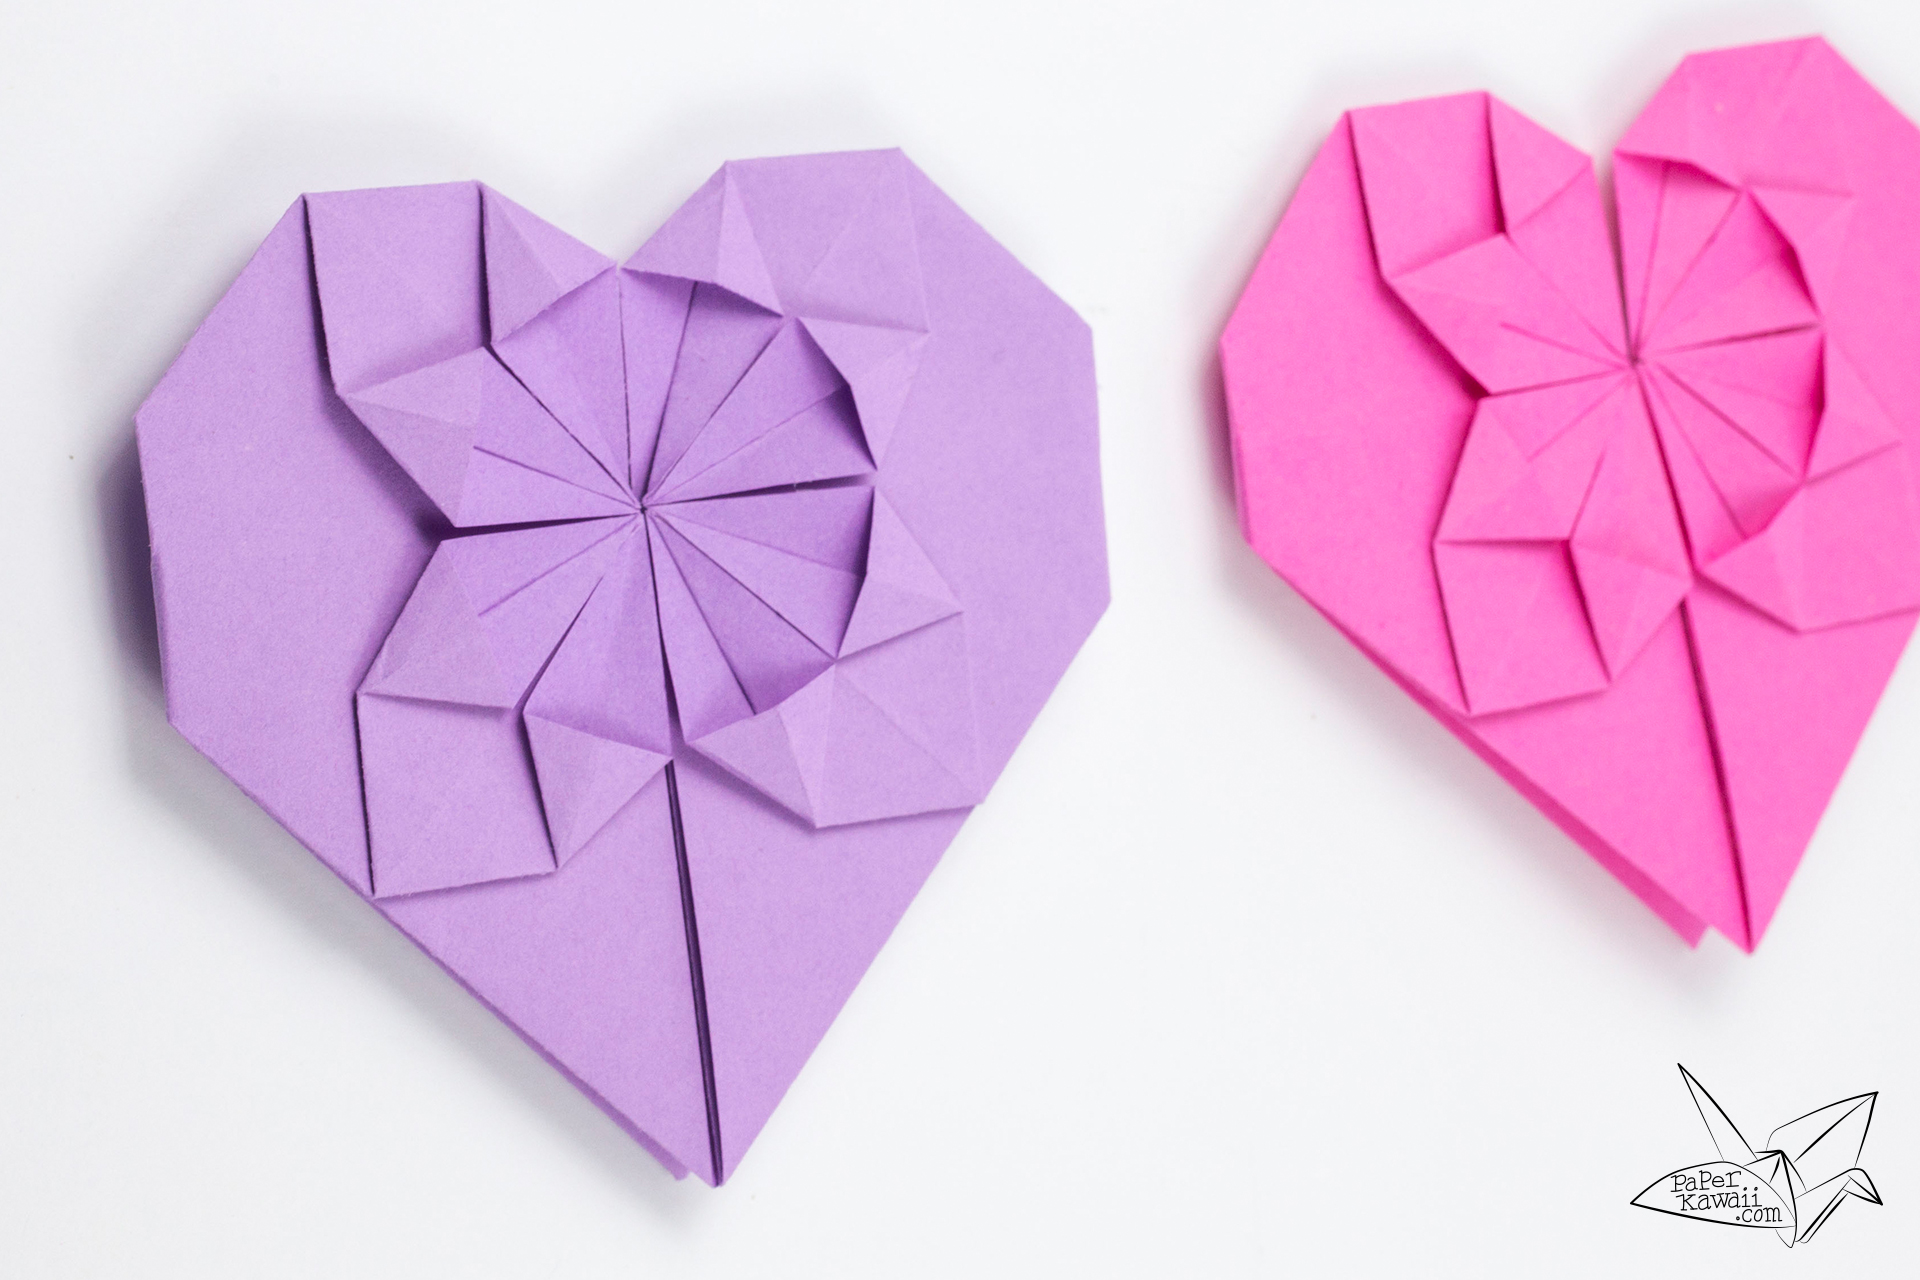 Money Origami Heart Tutorial for Valentine's Day - Paper ... - photo#31